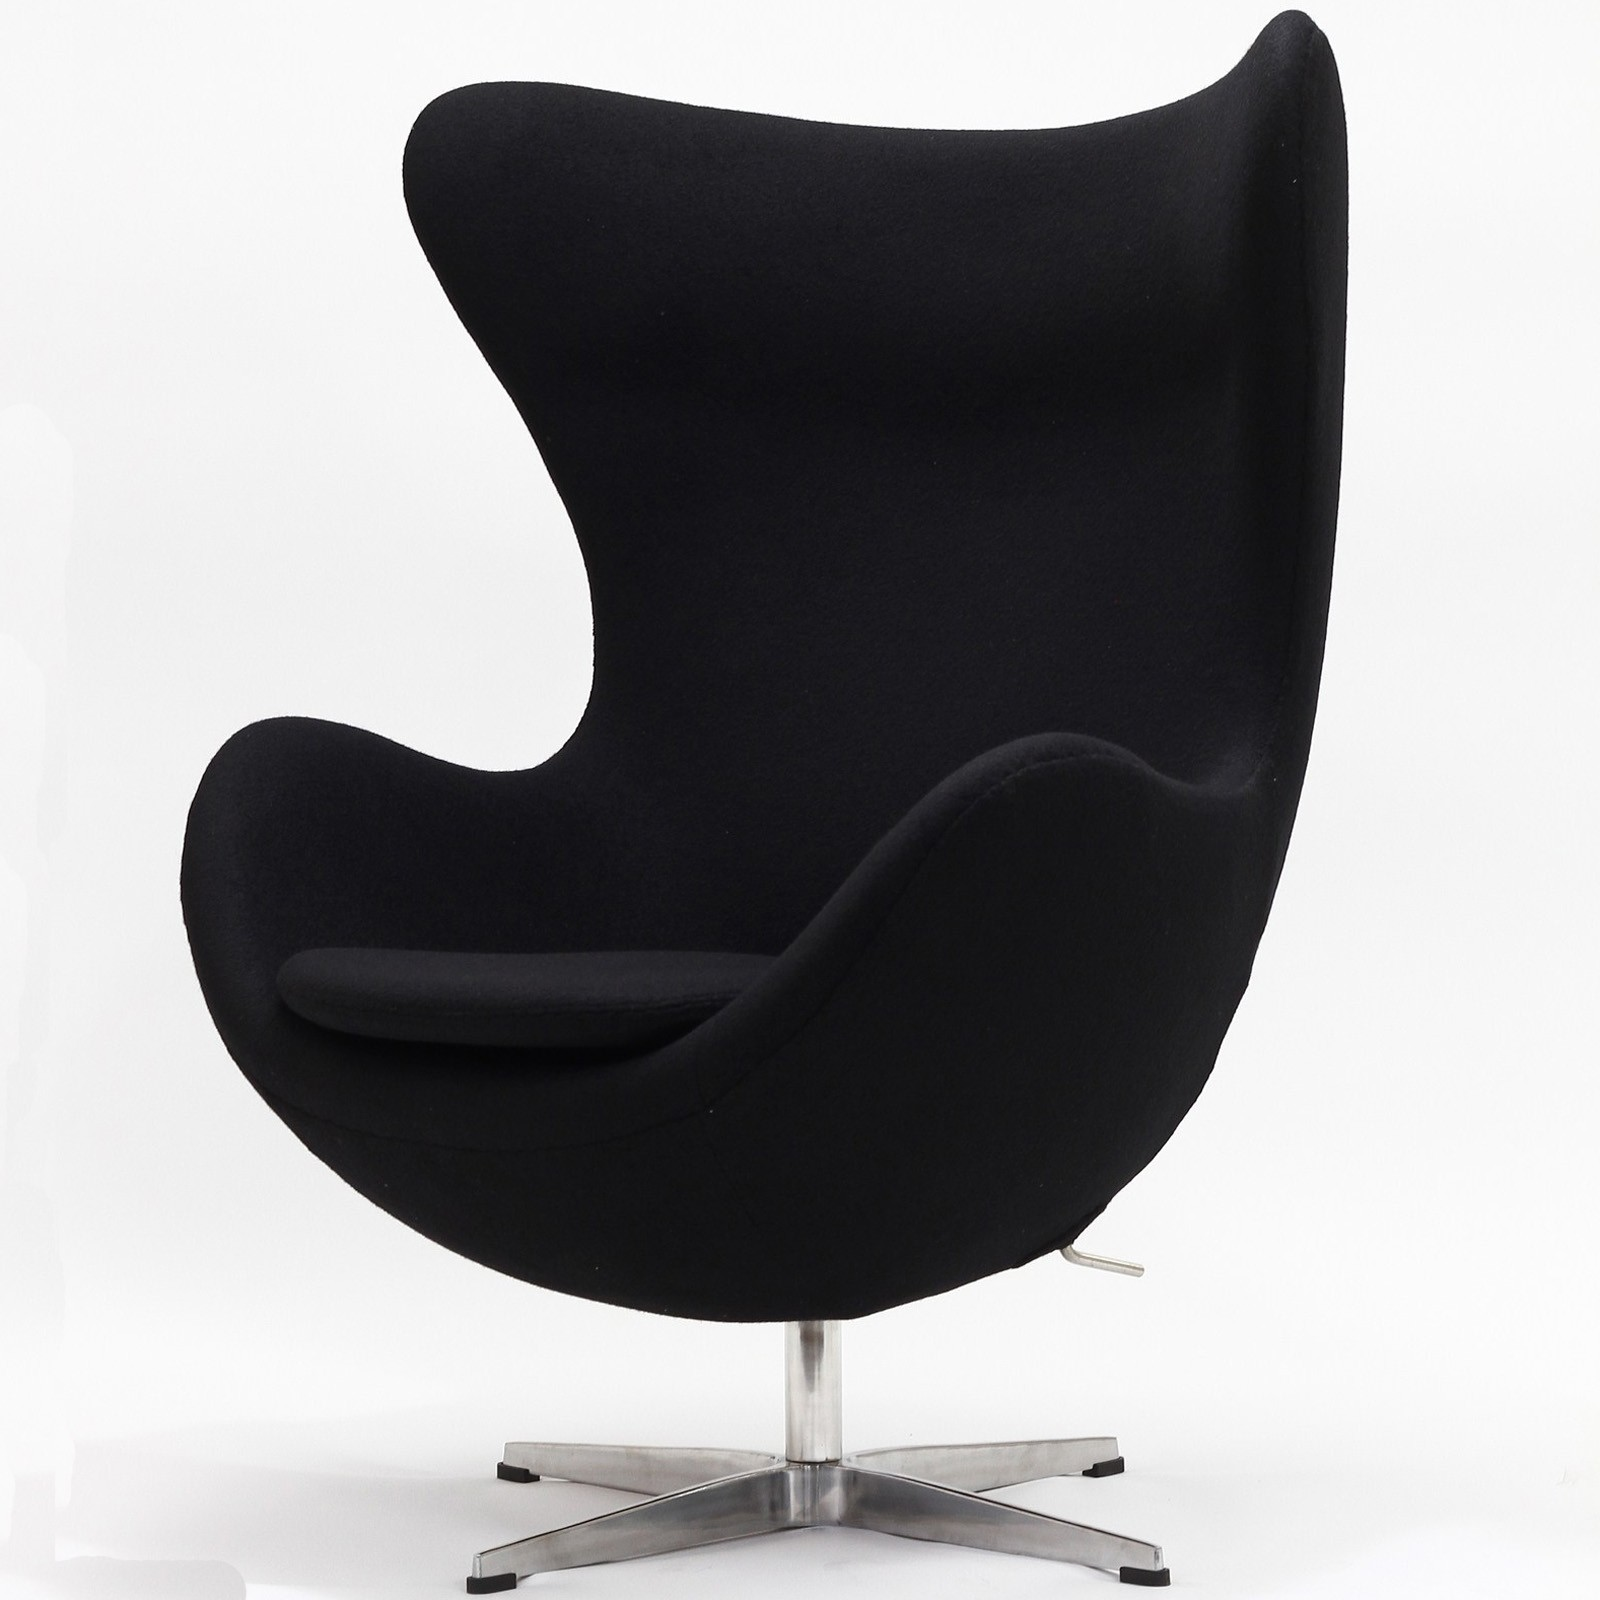 egg chair arne jacobsen gebraucht how to turn a wooden. Black Bedroom Furniture Sets. Home Design Ideas